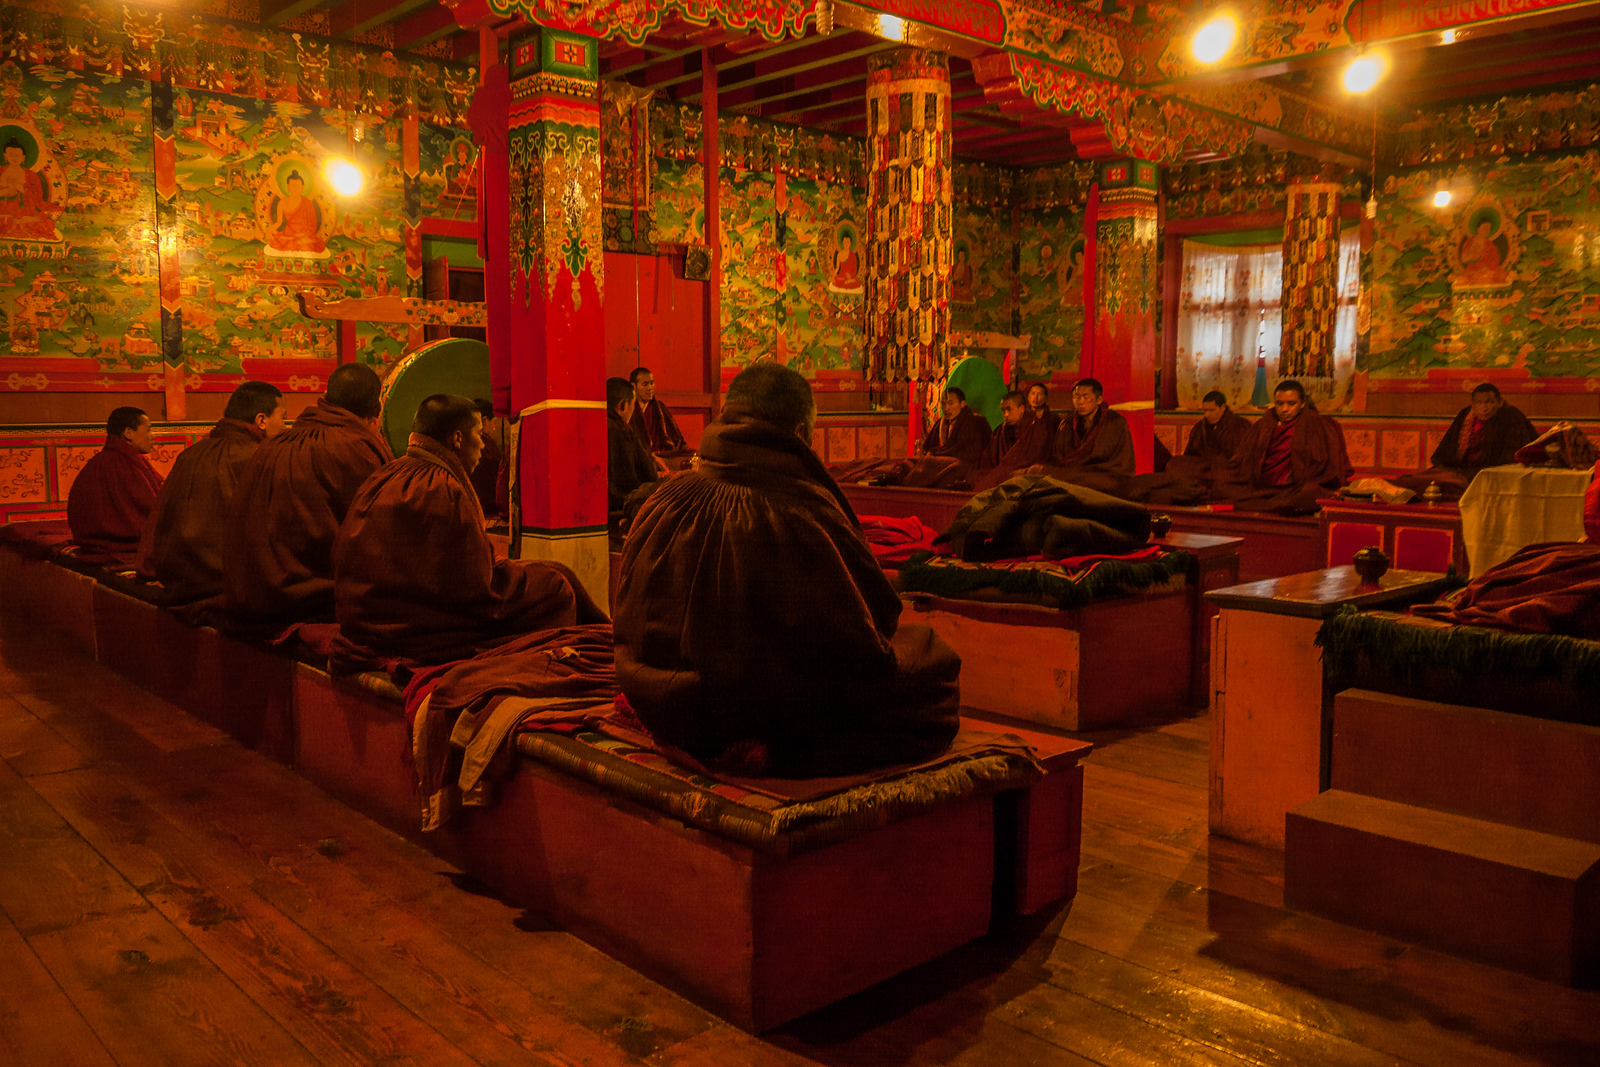 Monks pray at the Tengboche Monastery in the Everest Region.